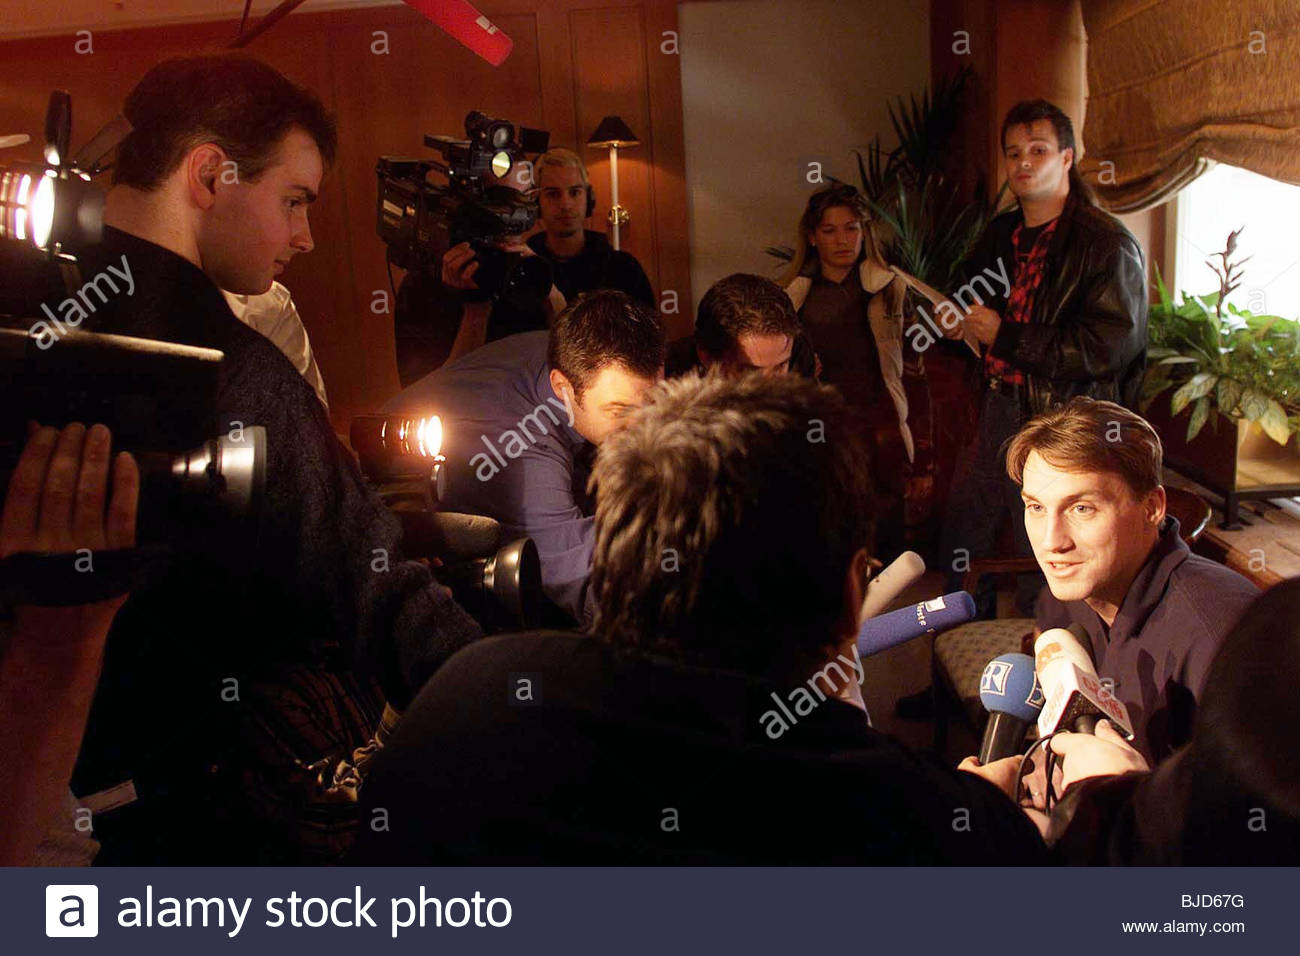 02/11/99 MUNICH - GERMANY Rangers' German keeper Stefan Klos (right) is mobbed by press as he discusses his - Stock Image